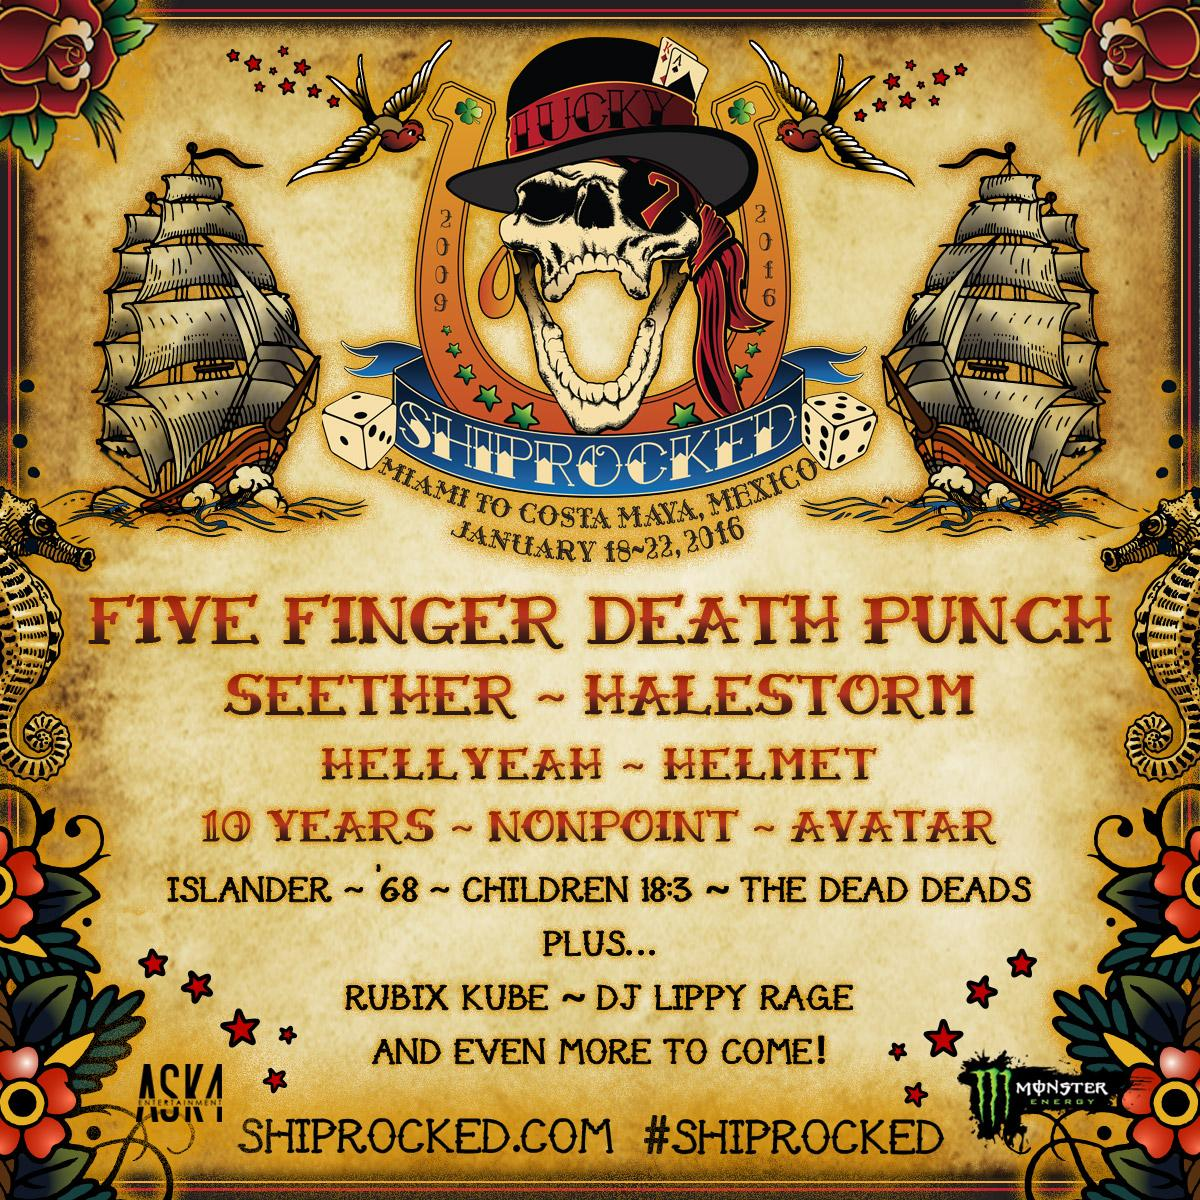 Behold the initial lineup for #ShipRocked! Welcome aboard @FFDP  @SeetherOfficial @Halestorm @hellyeahband & more! http://t.co/5VzbJabfg0